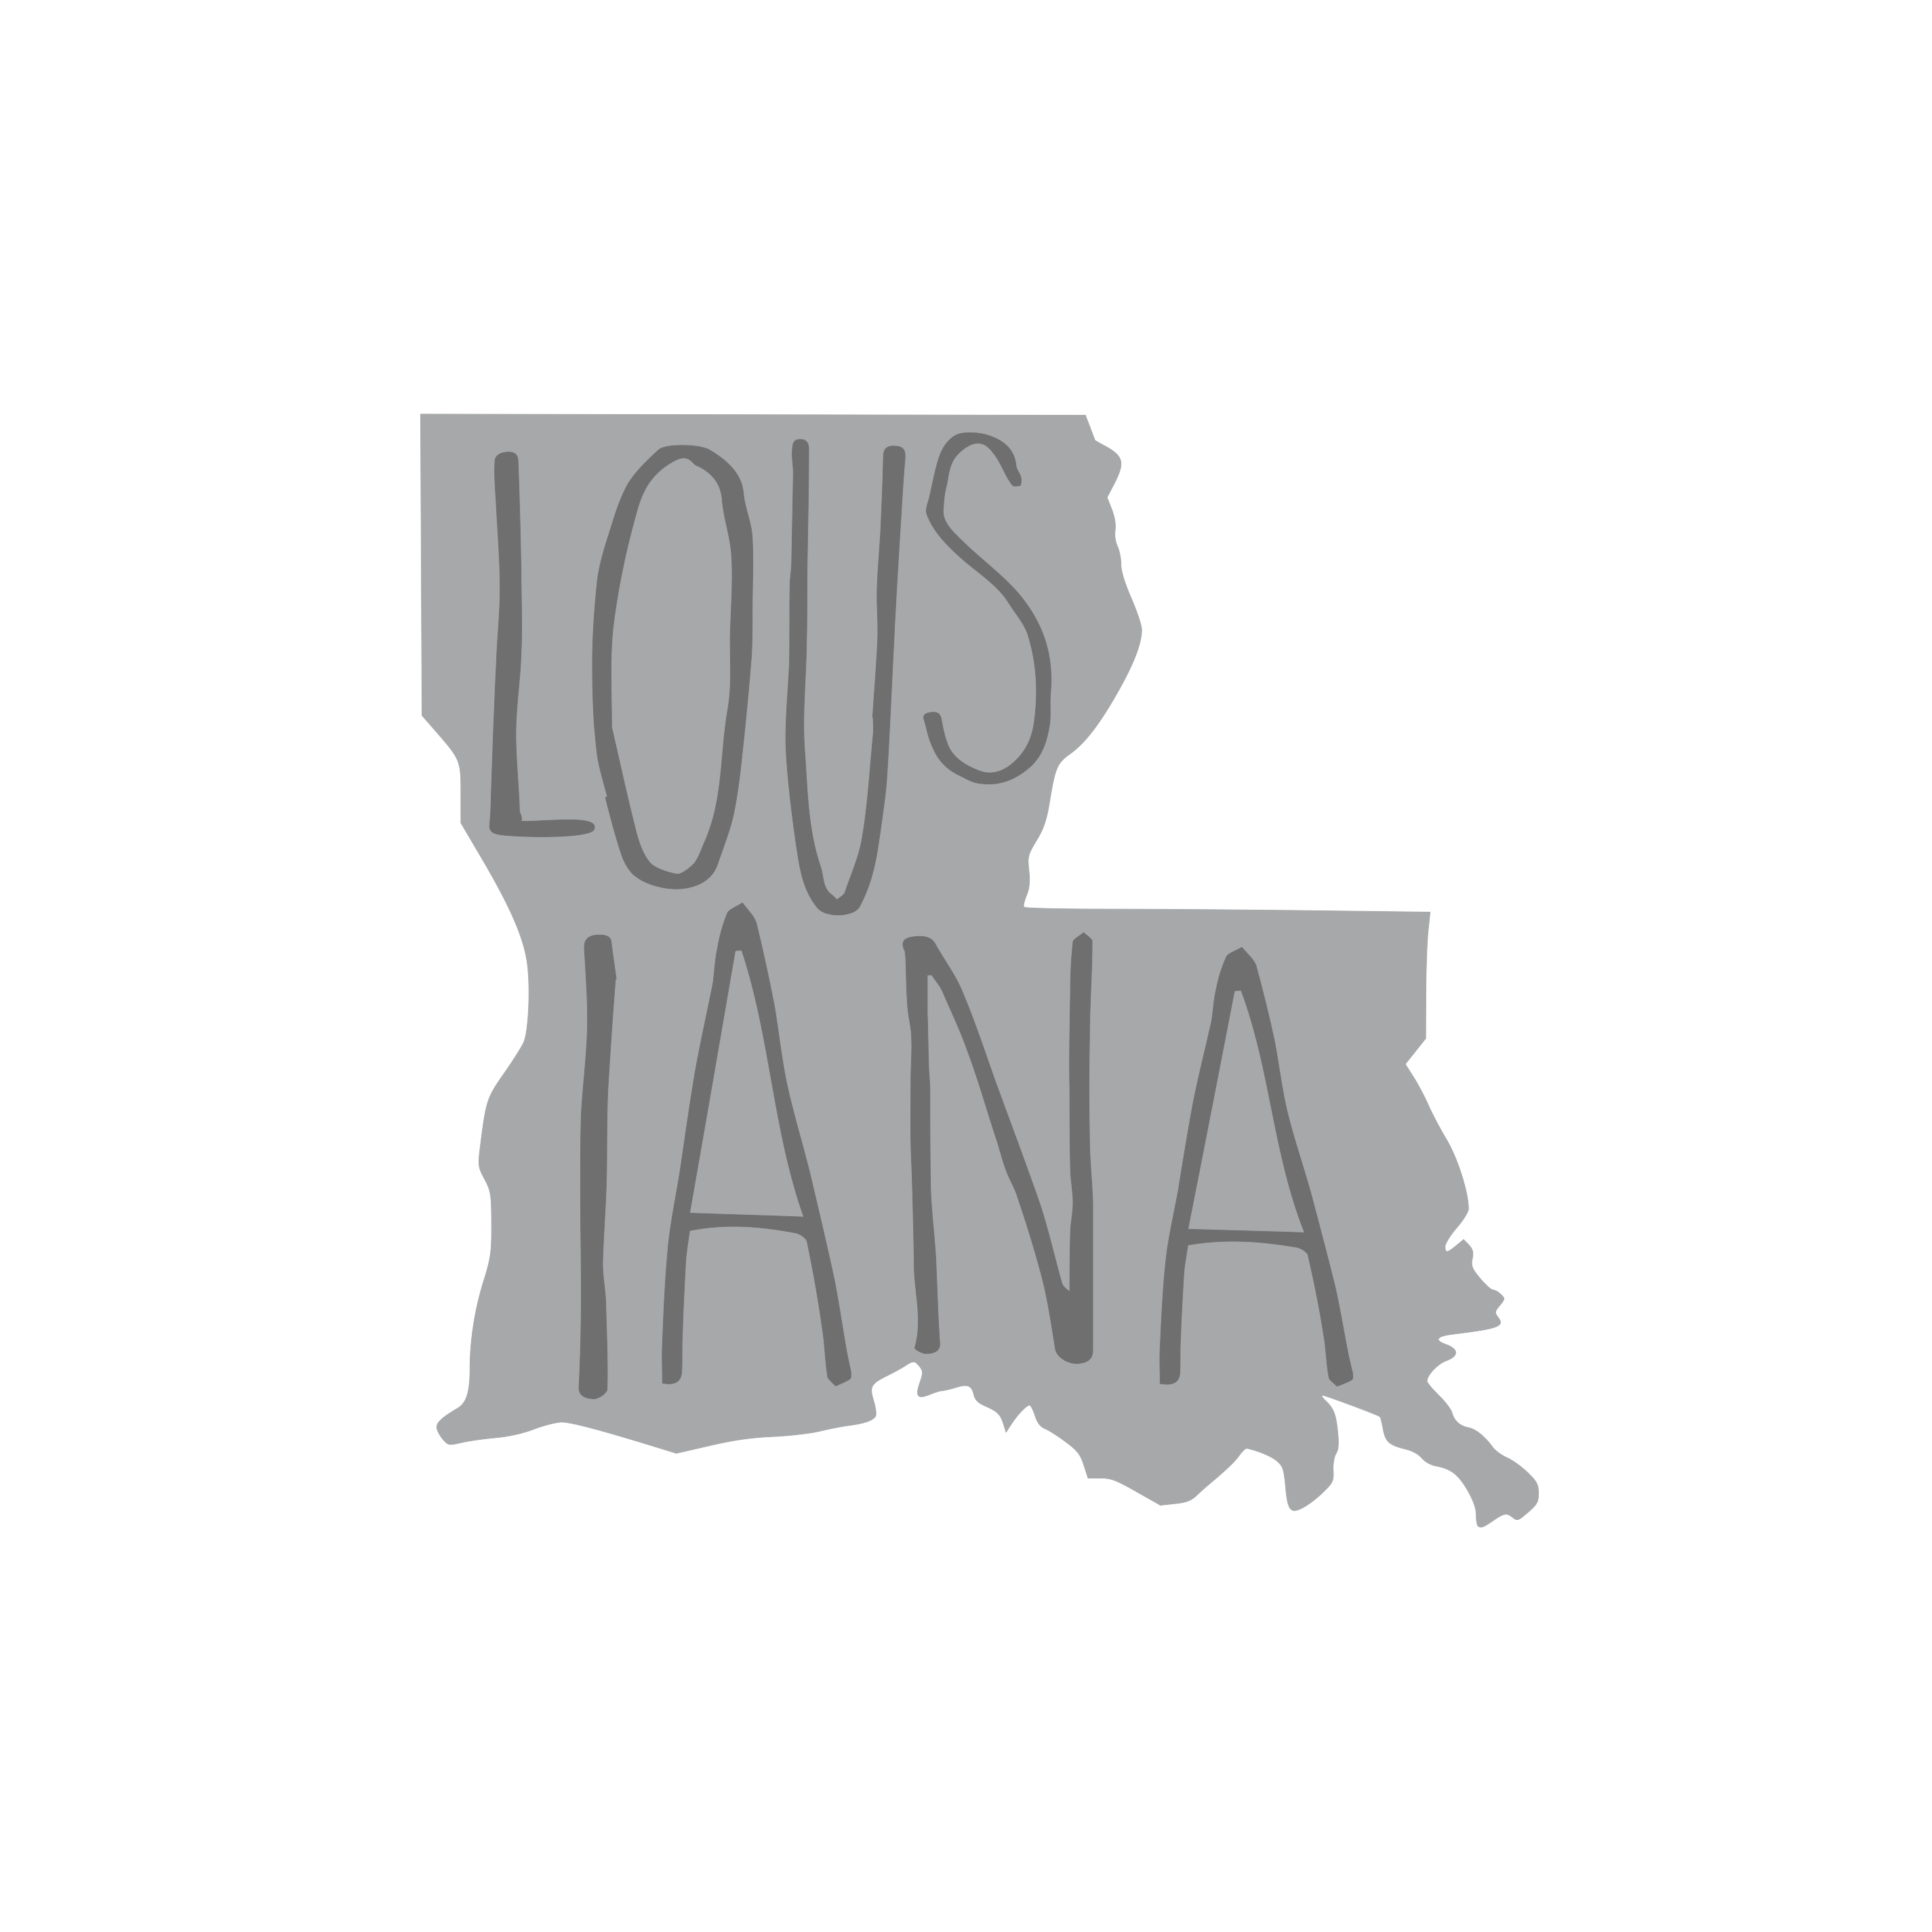 8171 Louisiana State w/ Words